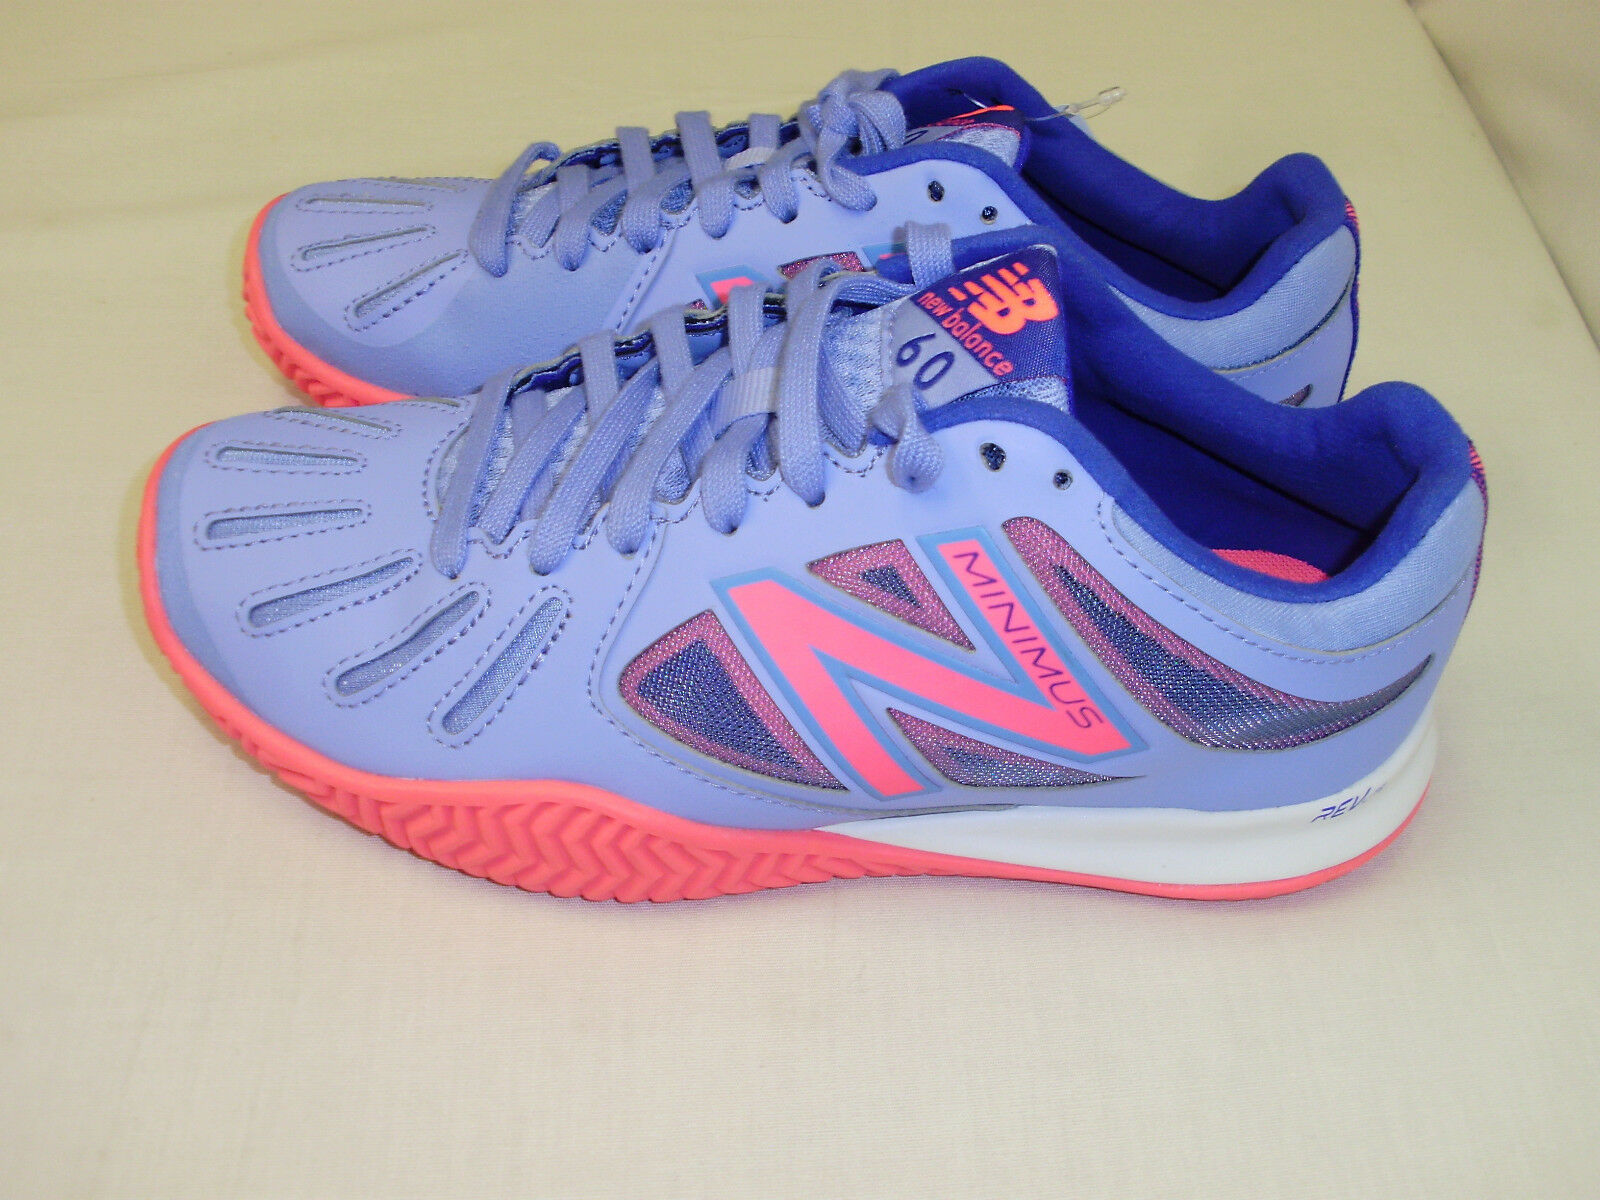 Lady's New Balance Minimus 60 Violet Clair Chaussures De Course Baskets Taille 6.5 Neuf